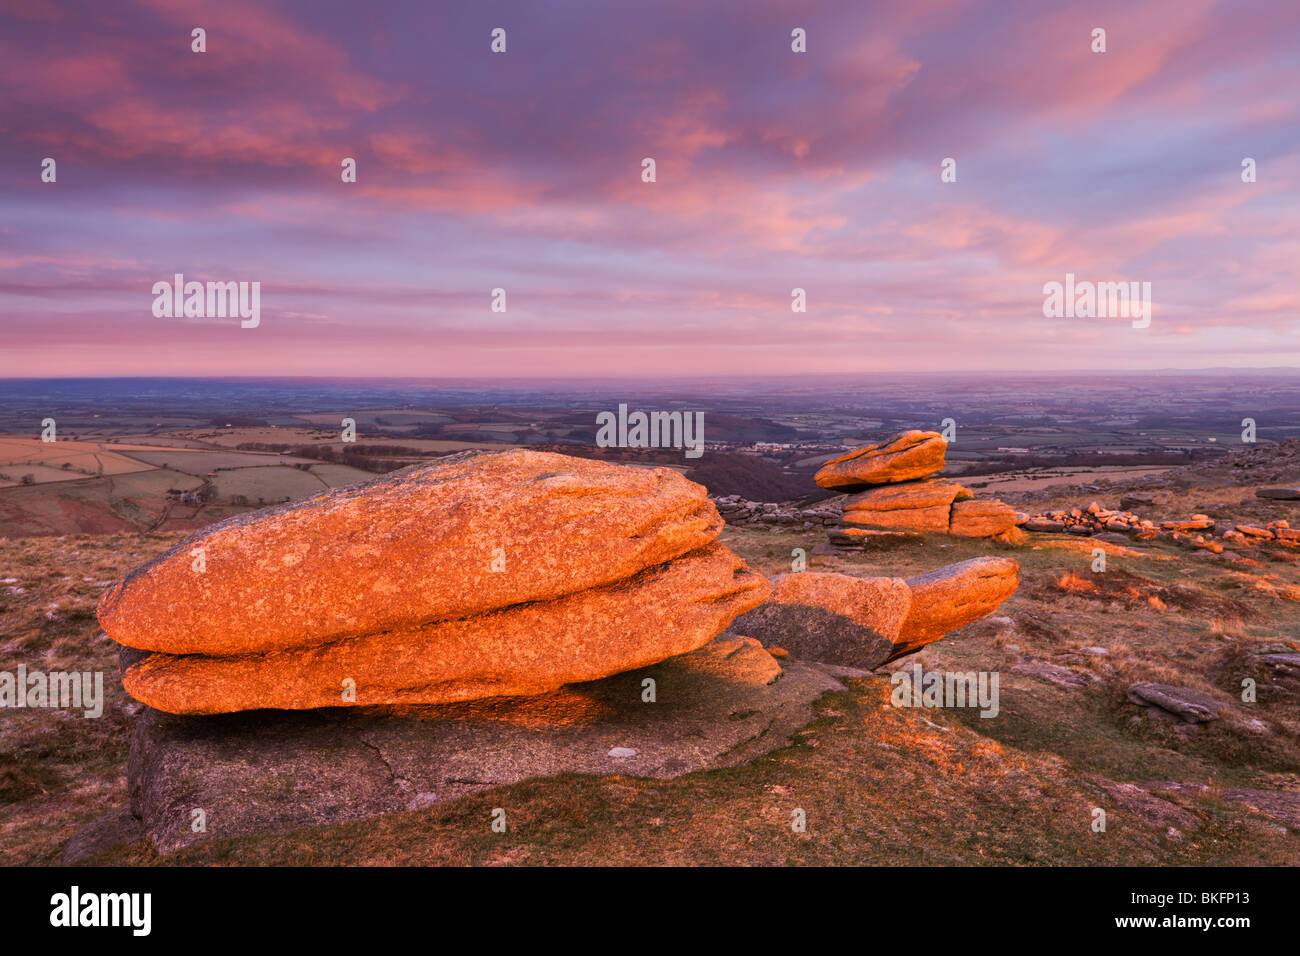 Logan stones bathed in first light of a winter morning, Belstone Tor, Dartmoor National Park, Devon, England. - Stock Image